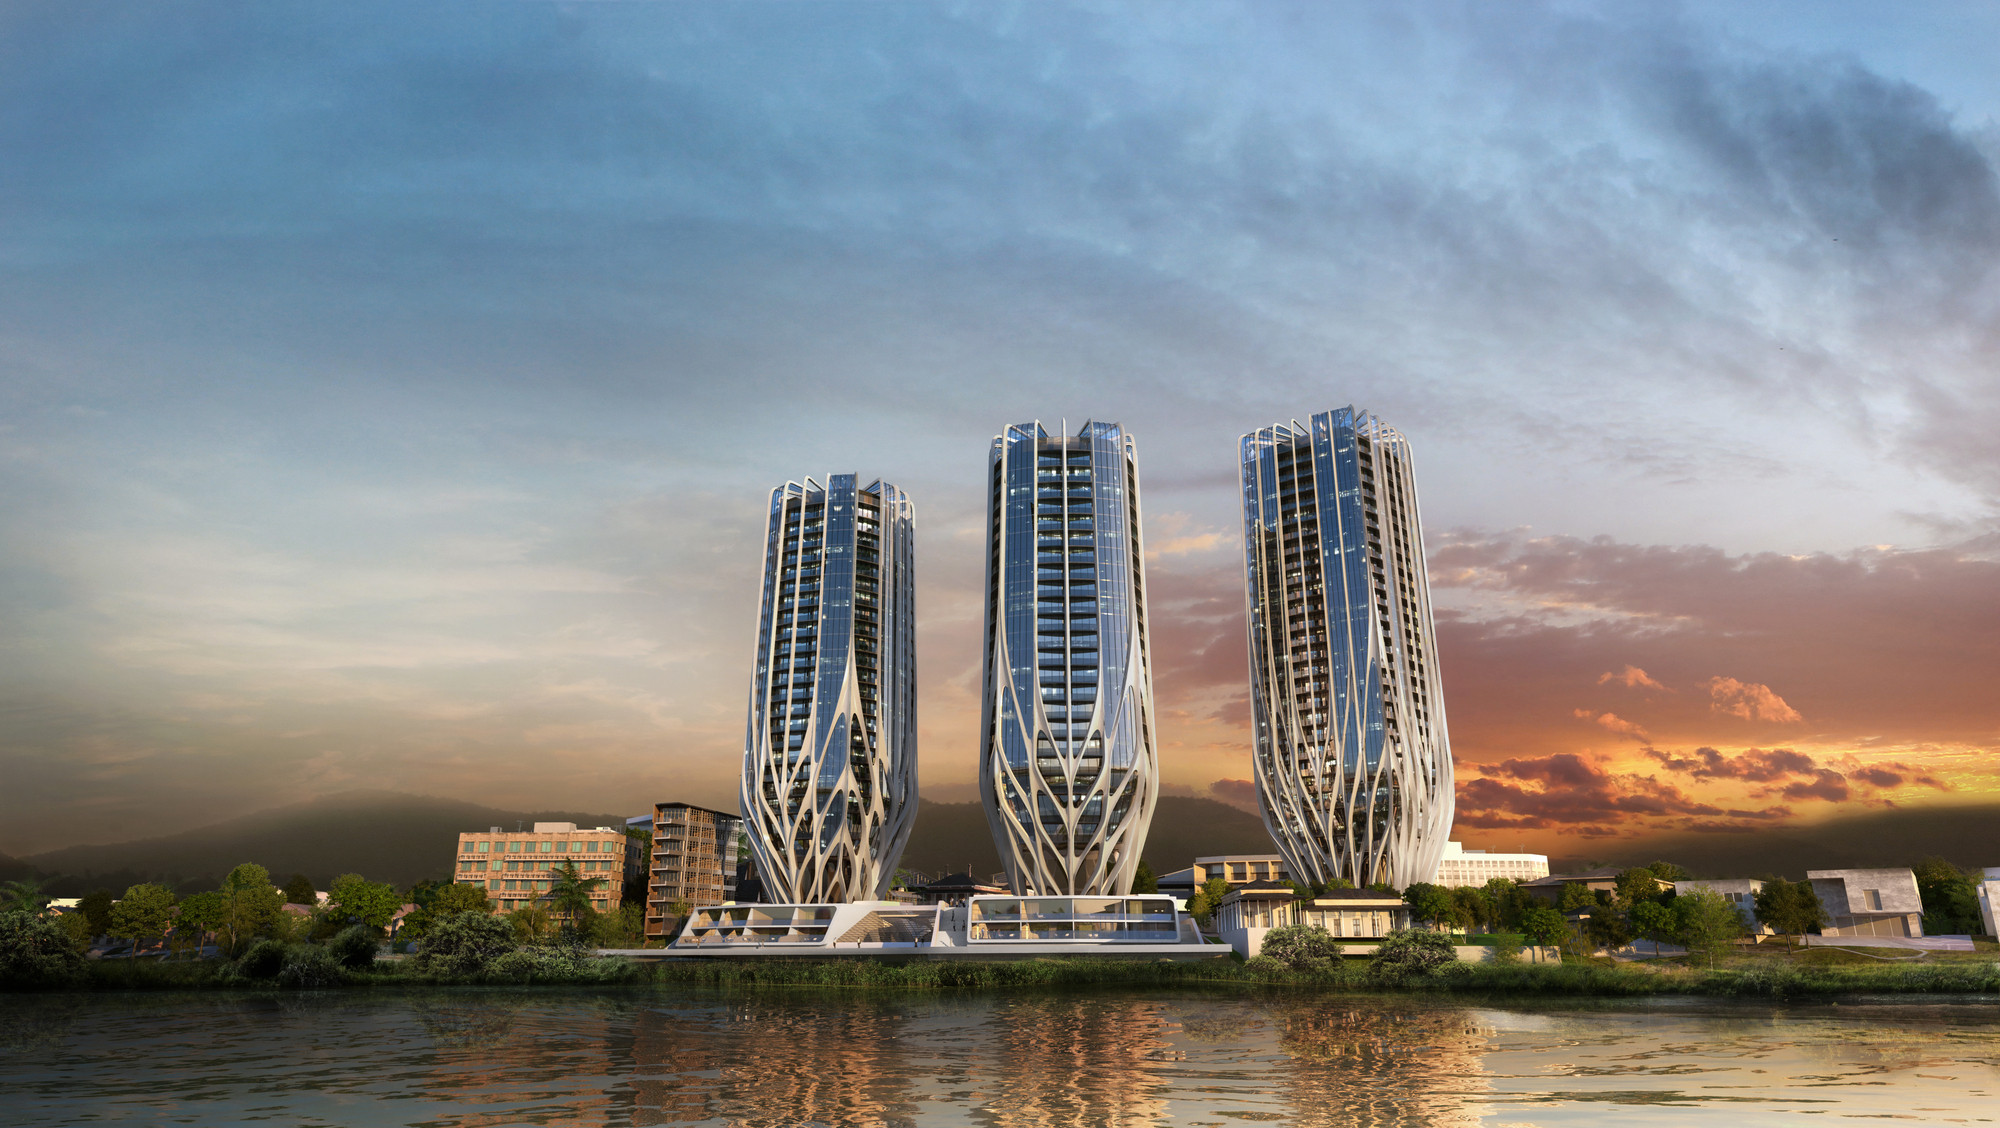 """Zaha Hadid Says She """"Would Love To Do a Tower in London"""", Zaha Hadid Architects' designs for three towers in Brisbane were recently unveiled. Image Courtesy of Zaha Hadid Architects"""